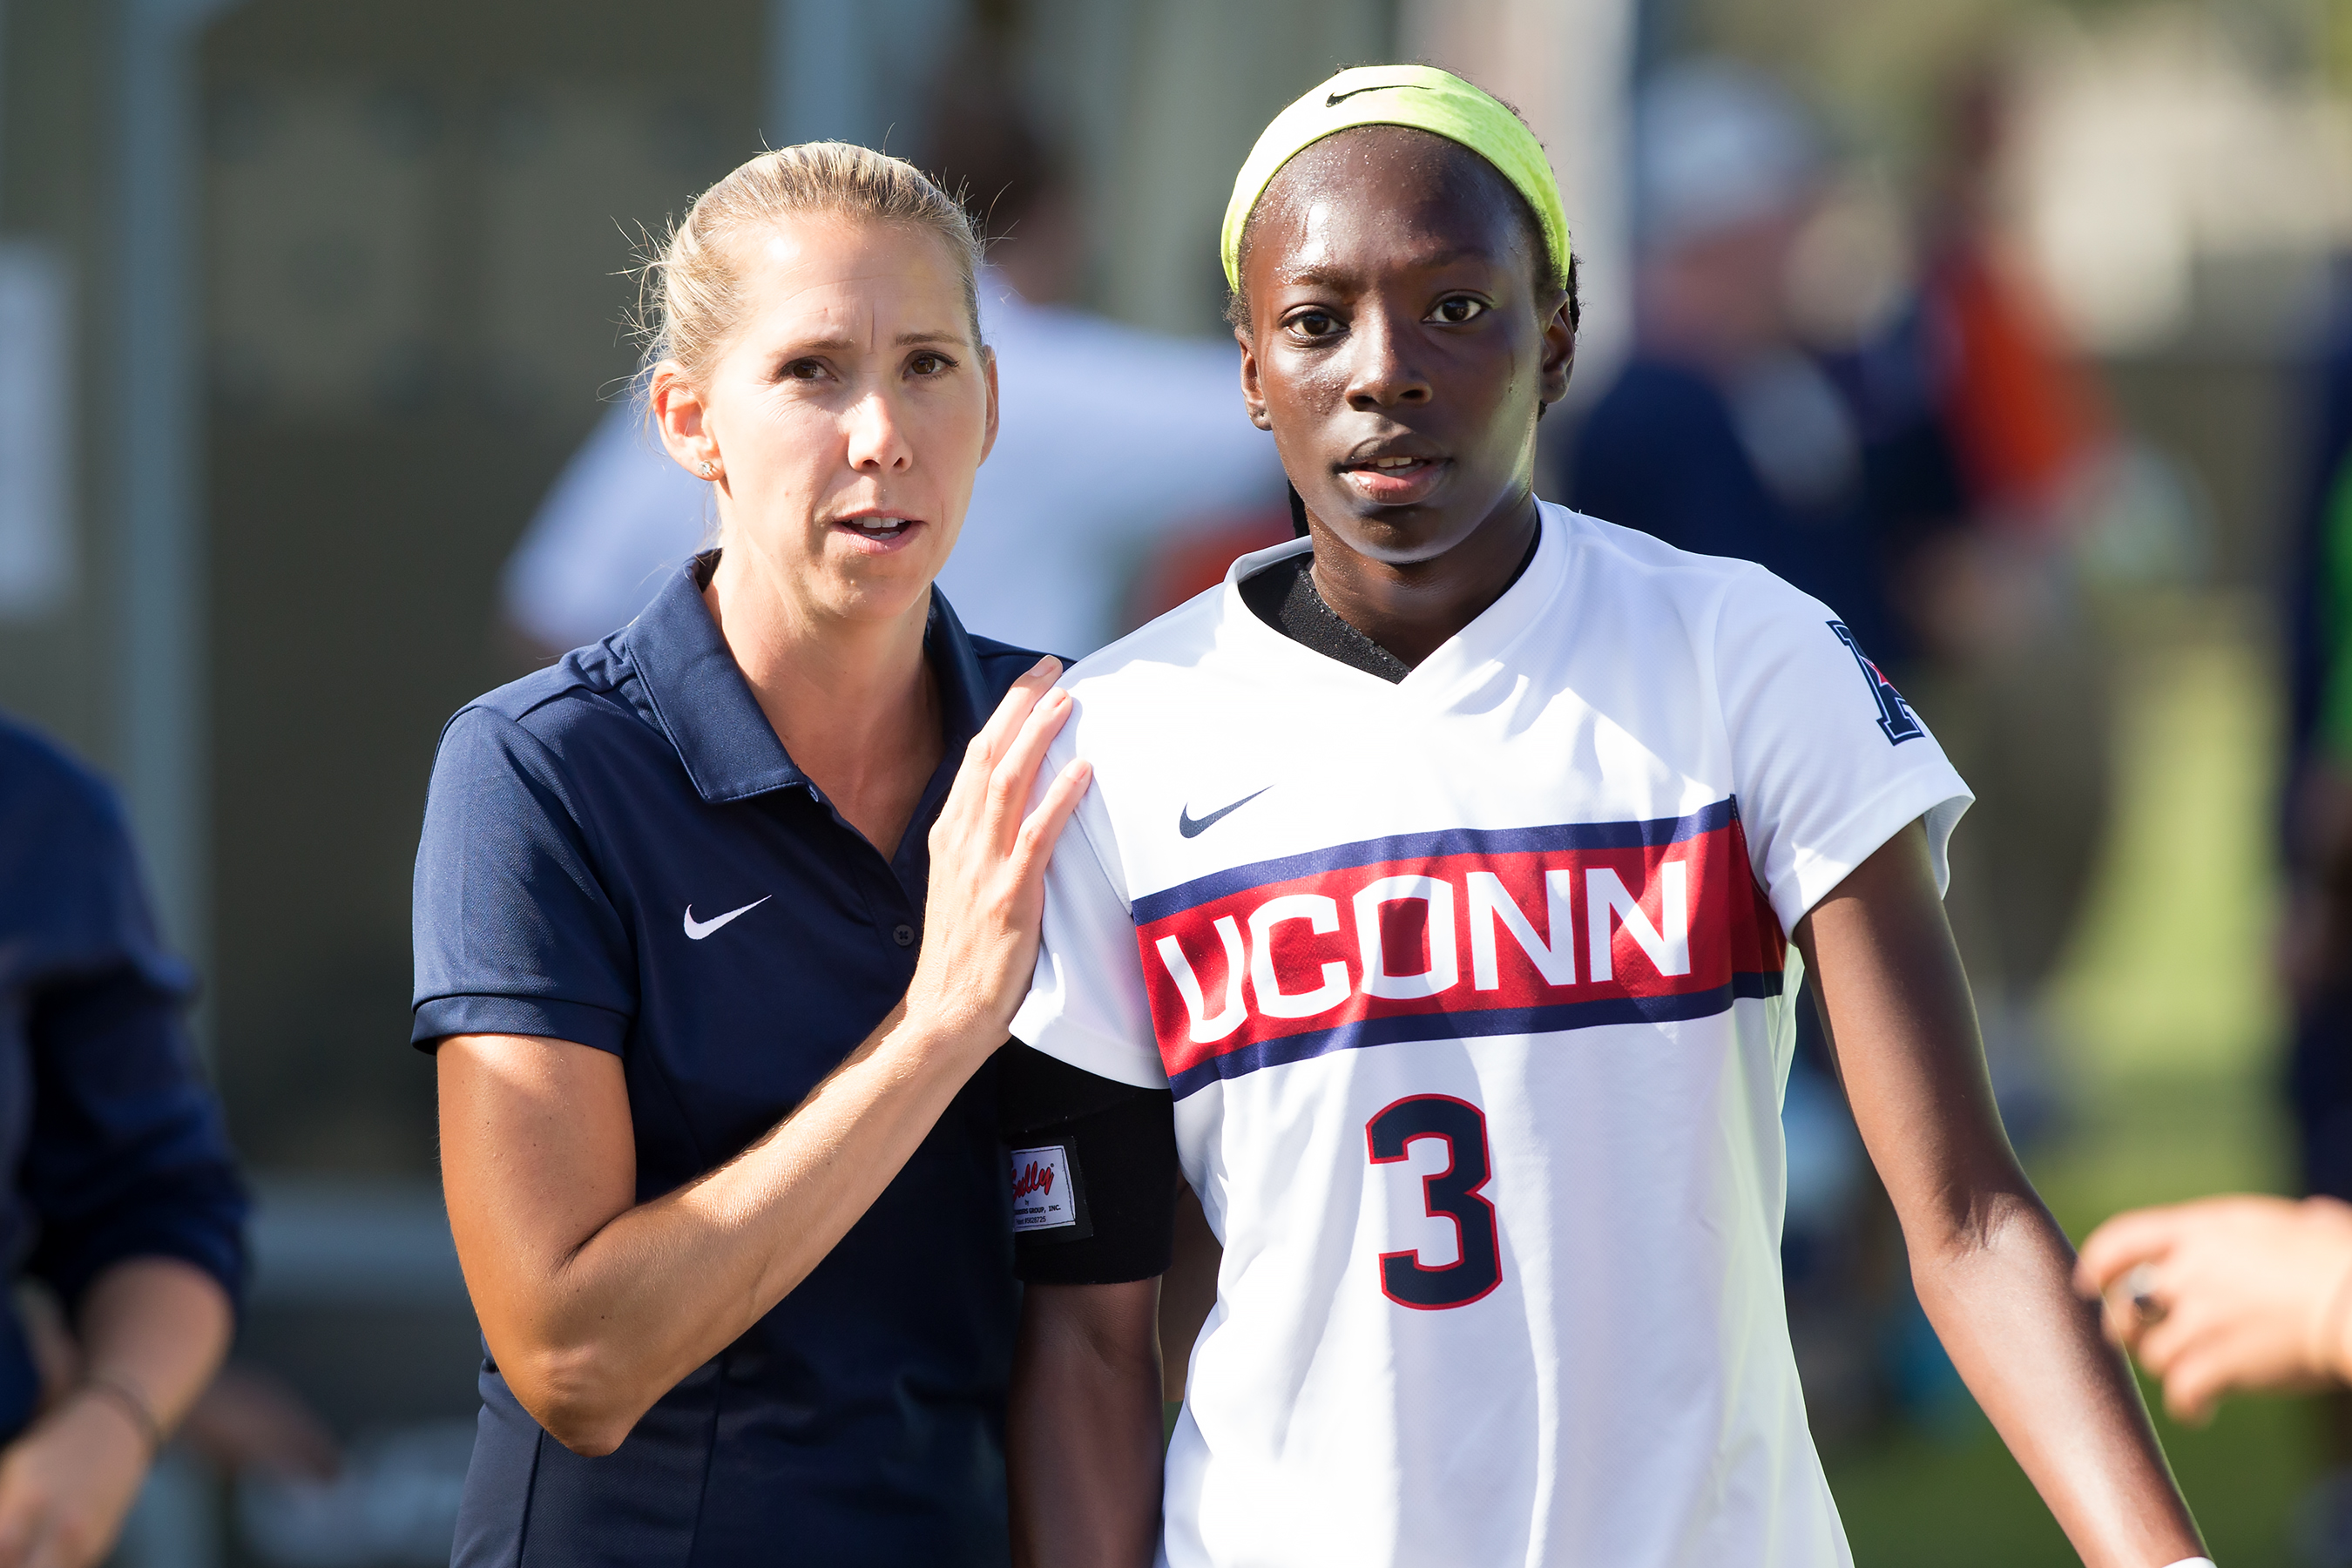 Margaret (Tietjen) Rodriguez with player Yamilee Eveillard. (Stephen Slade '89 (SFA) for UConn)